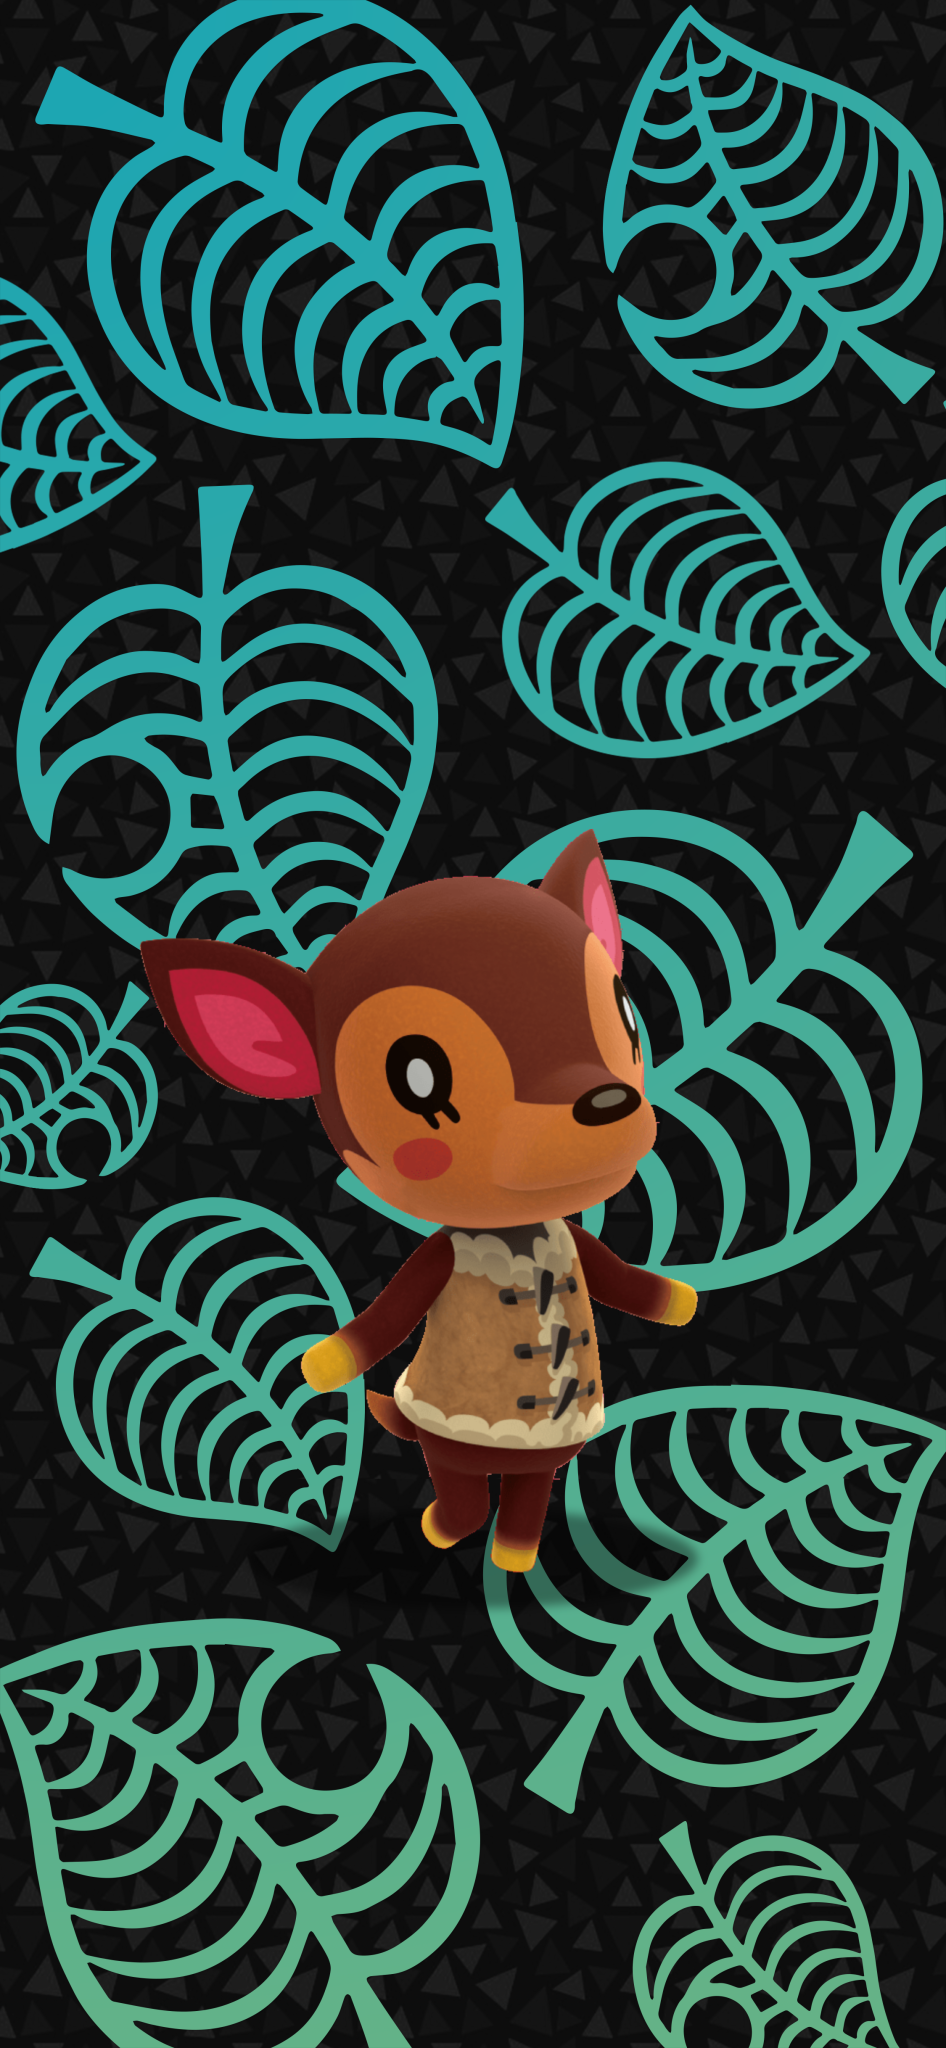 Animal Crossing New Horizons Phone Wallpapers Free For The Community 1 Crossingchar Animal Crossing Animal Crossing Characters Animal Crossing Villagers